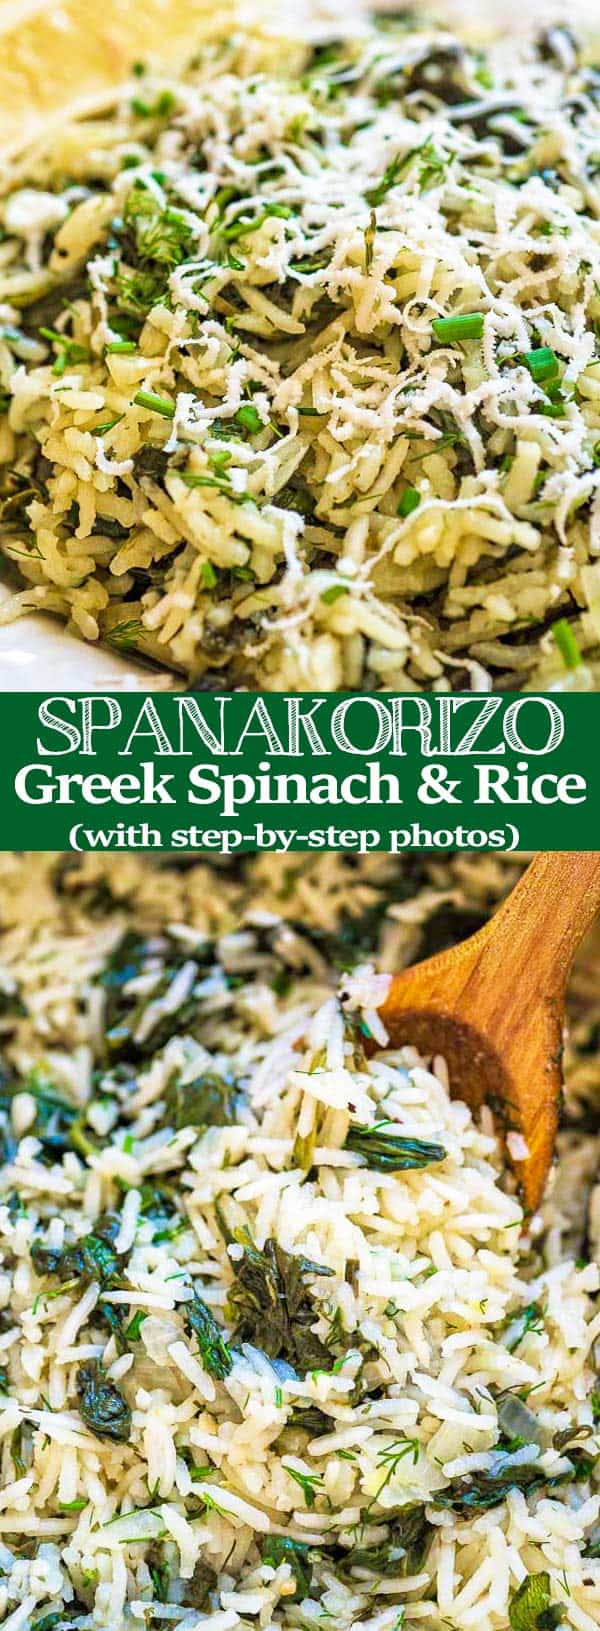 This simple, delicious, and authentic Spanakorizo (Greek Spinach Rice) makes a filling vegetarian meal or a side dish. Fresh dill, chives, and lemon juice give it an extraordinary flavor and aroma. ❤ COOKTORIA.COM #dinner #recipe #greek #rice #spinach #side